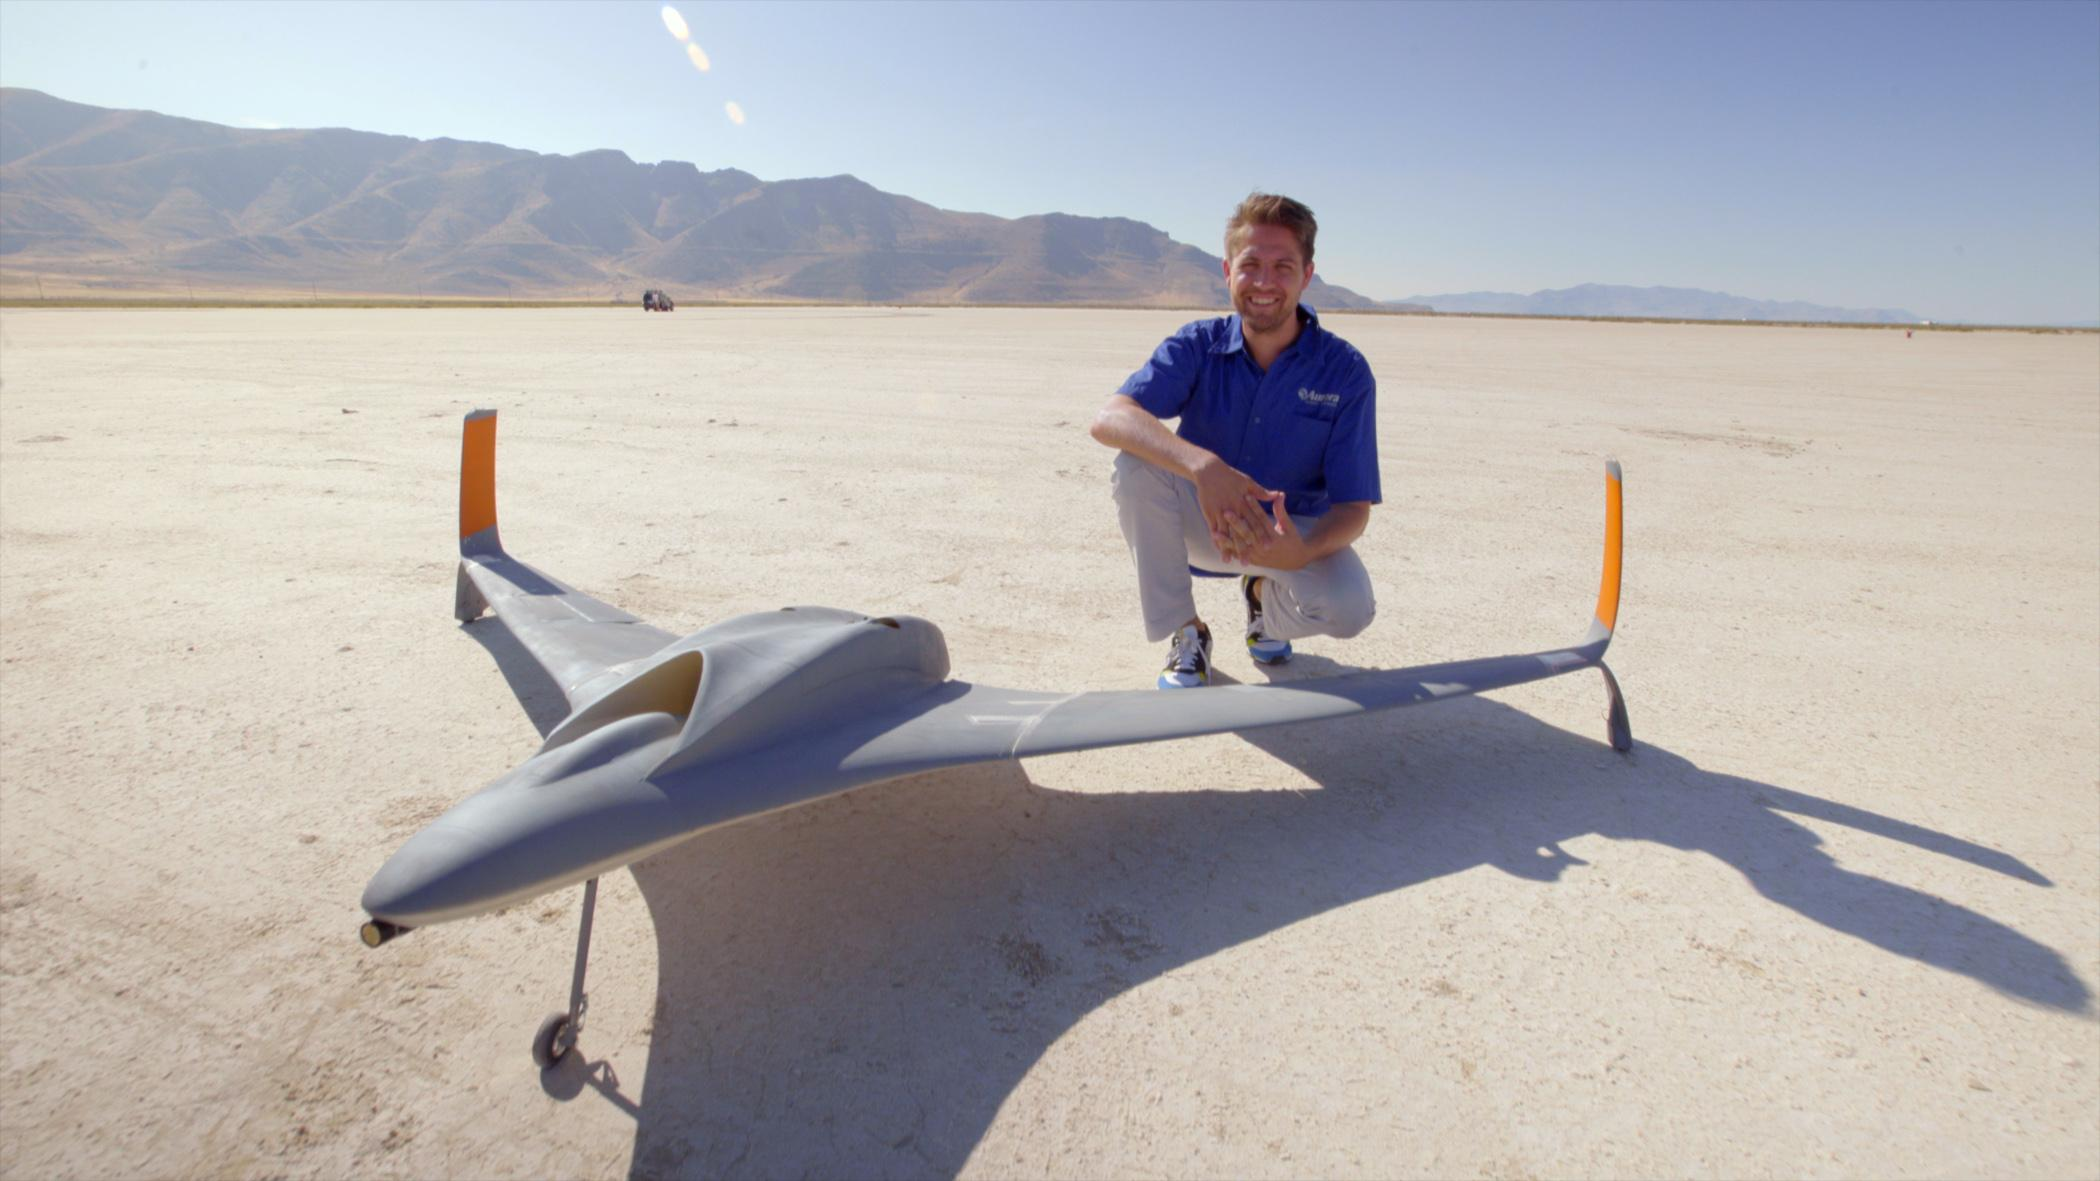 Drone UAV par Aurora Flight Sciences et Stratasys